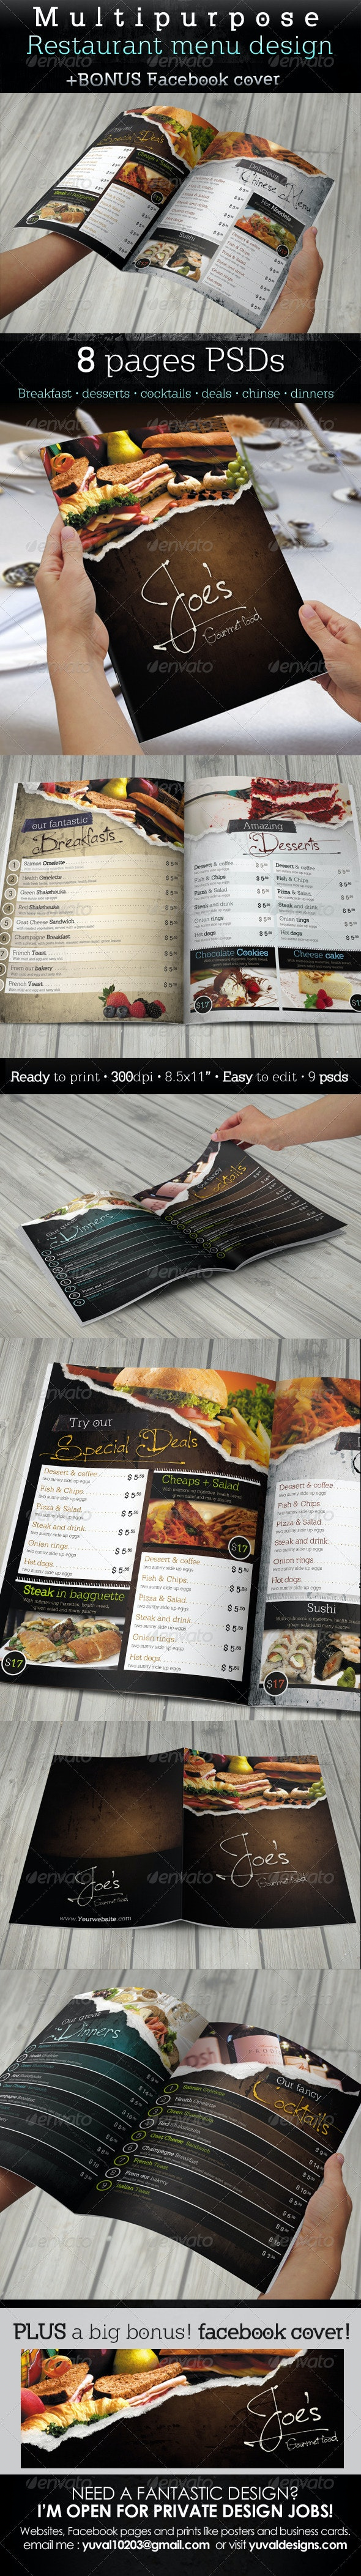 Multipurpose Restaurant Menu Template - Food Menus Print Templates